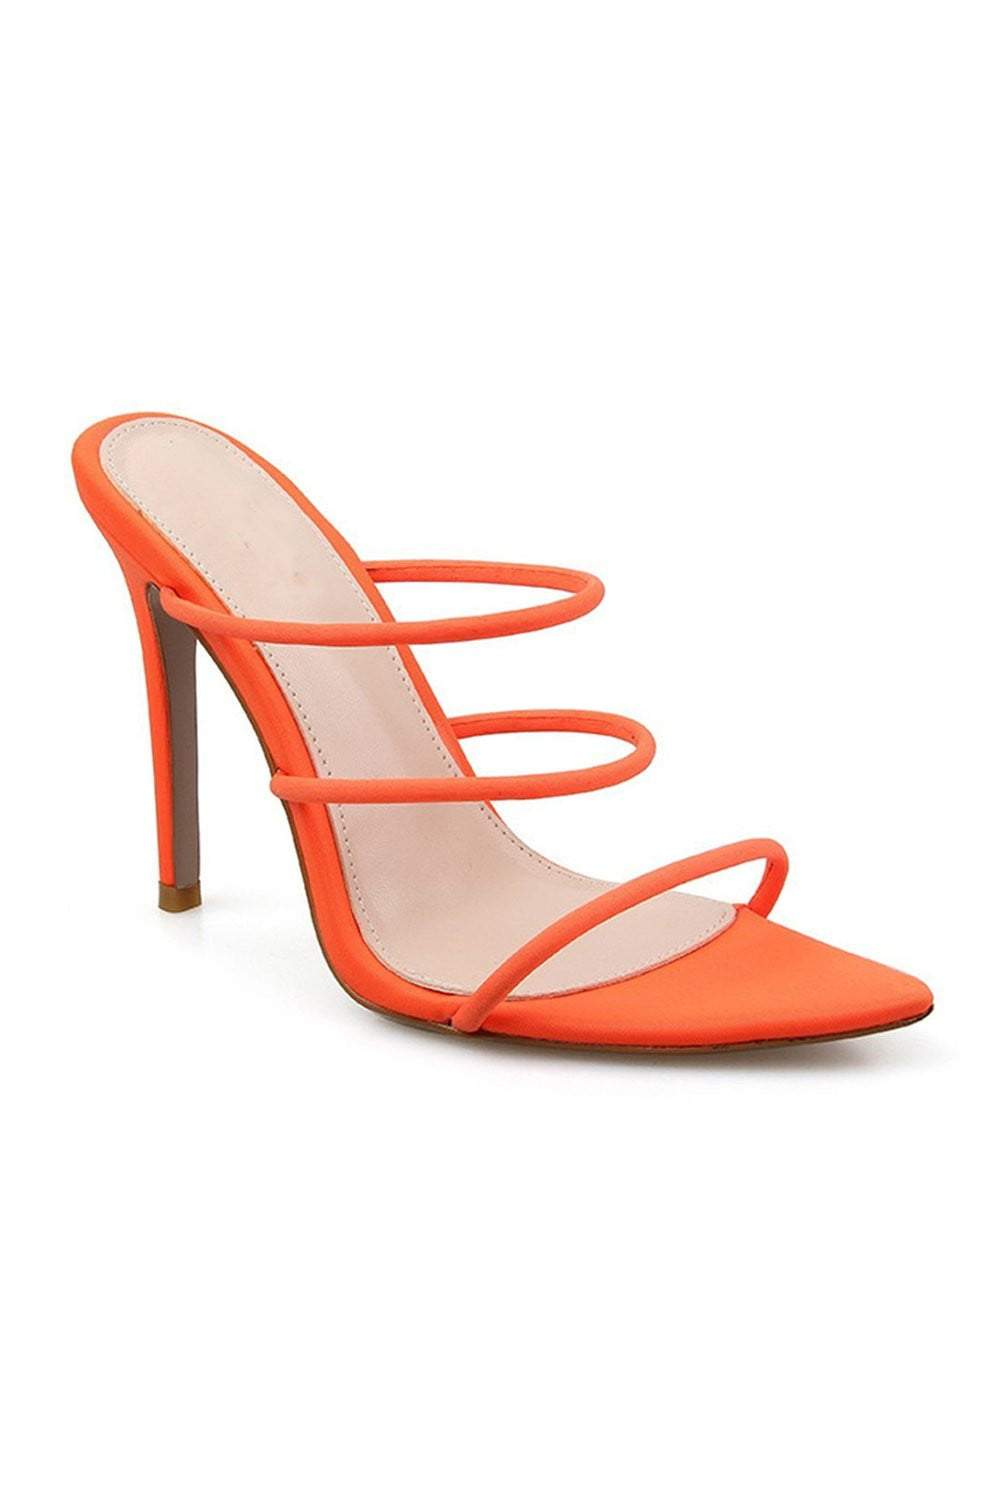 Orangered Strappy High Heeled Mules (2335400624187)